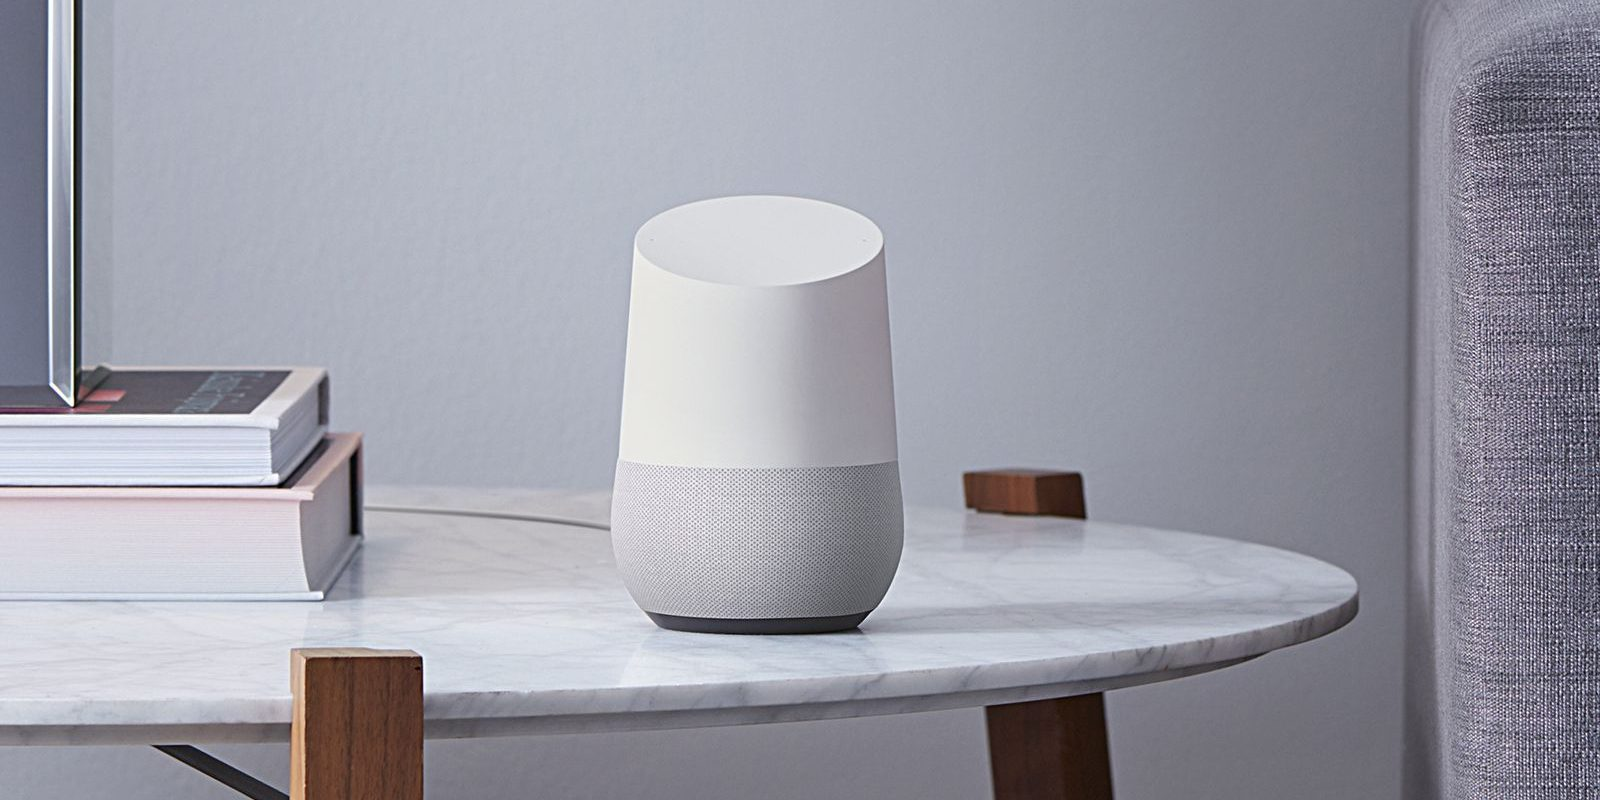 Here S A List Of Every Smart Home Device That Works With Google Home And Assistant 9to5google